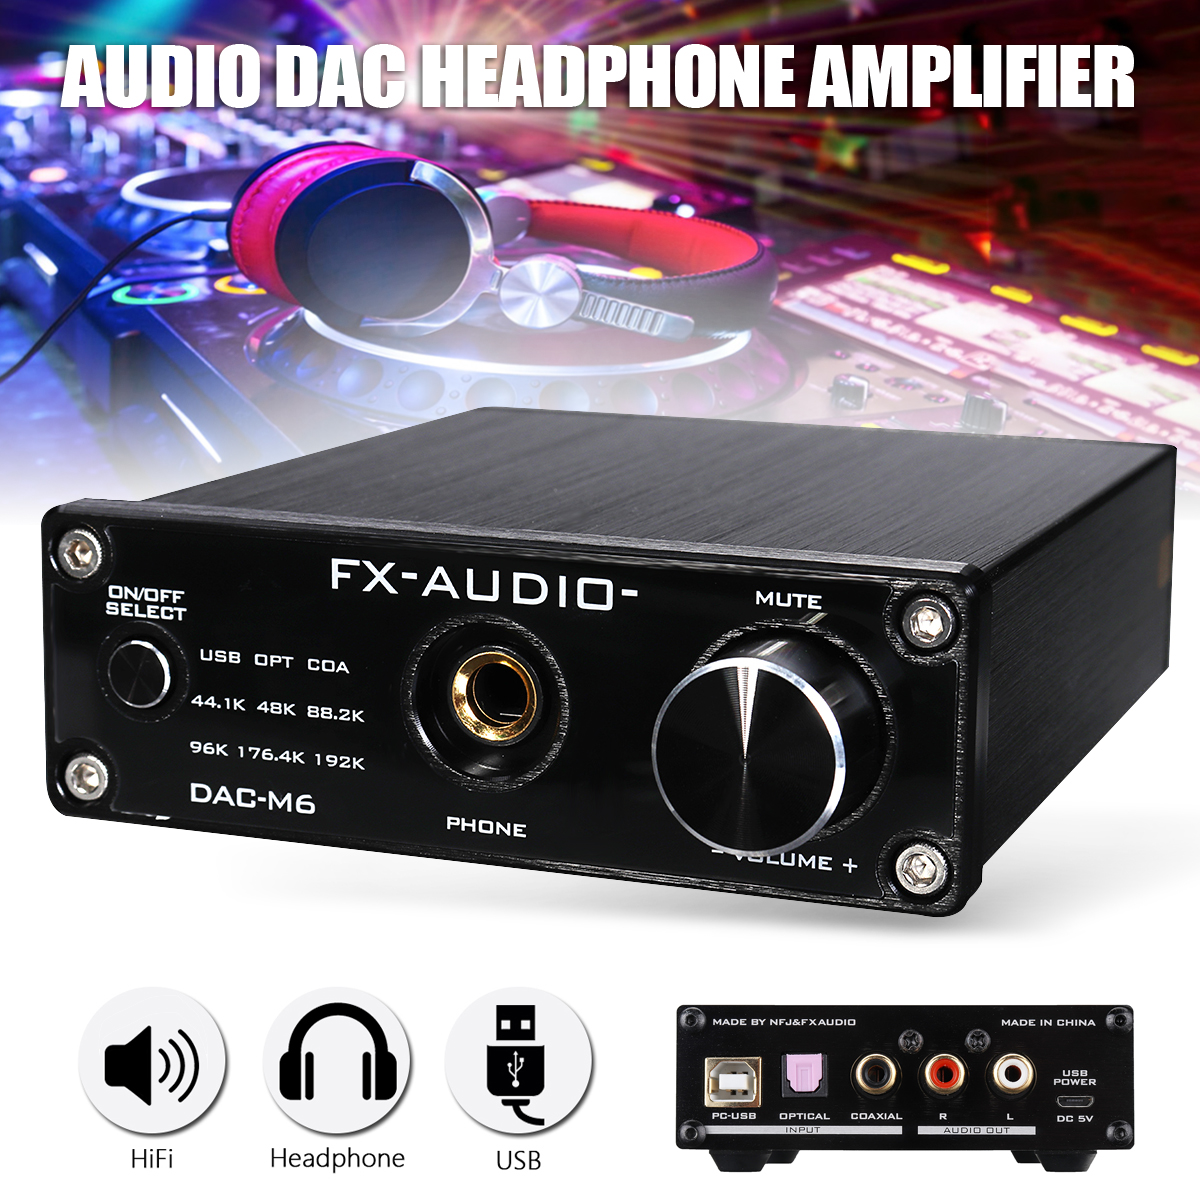 цена Mini USB HiFi Audio Decoder Headphone Amplifier 6.5mm Interface HIFI tube amplifier USB FX-AUDIO Audio Decoder онлайн в 2017 году